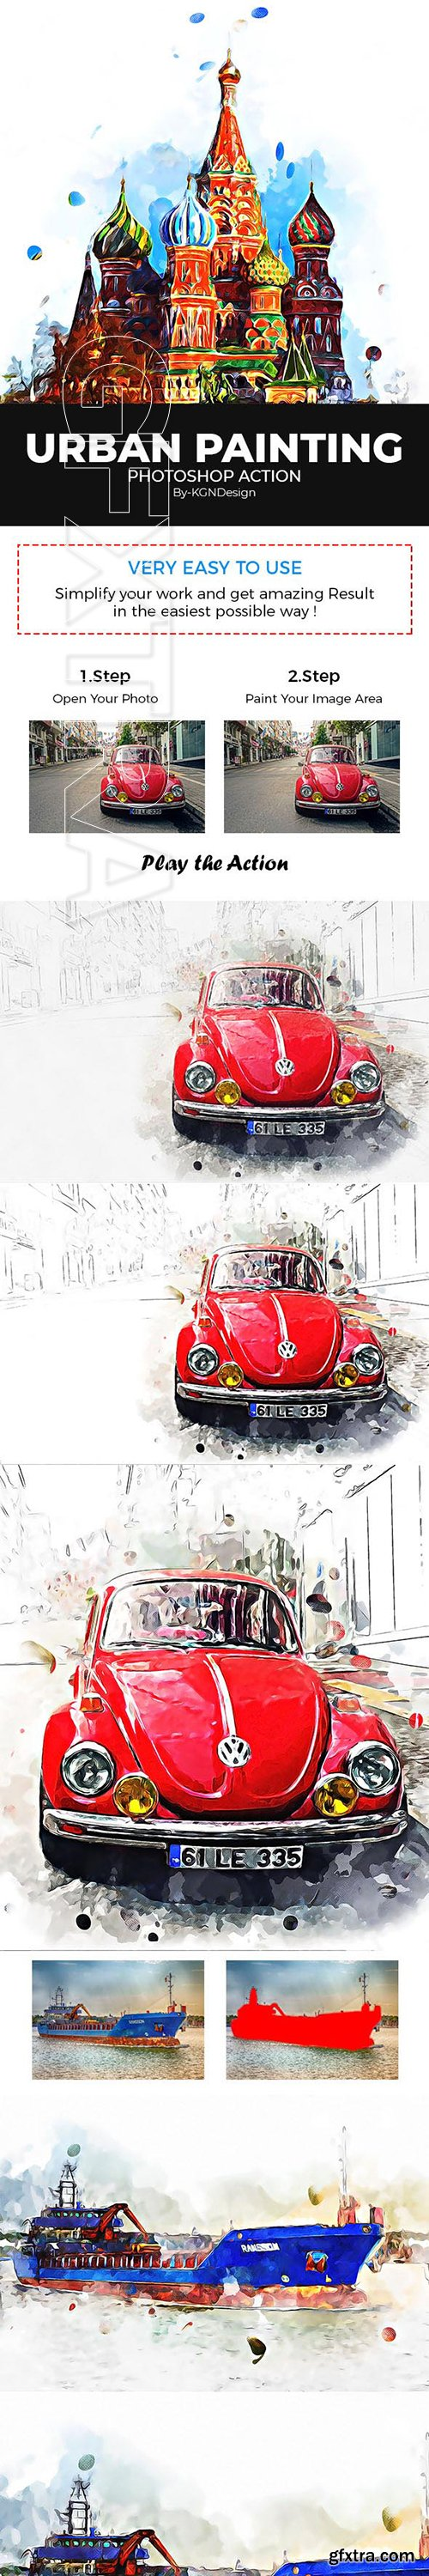 GraphicRiver - Urban Painting Photoshop Action 22230566